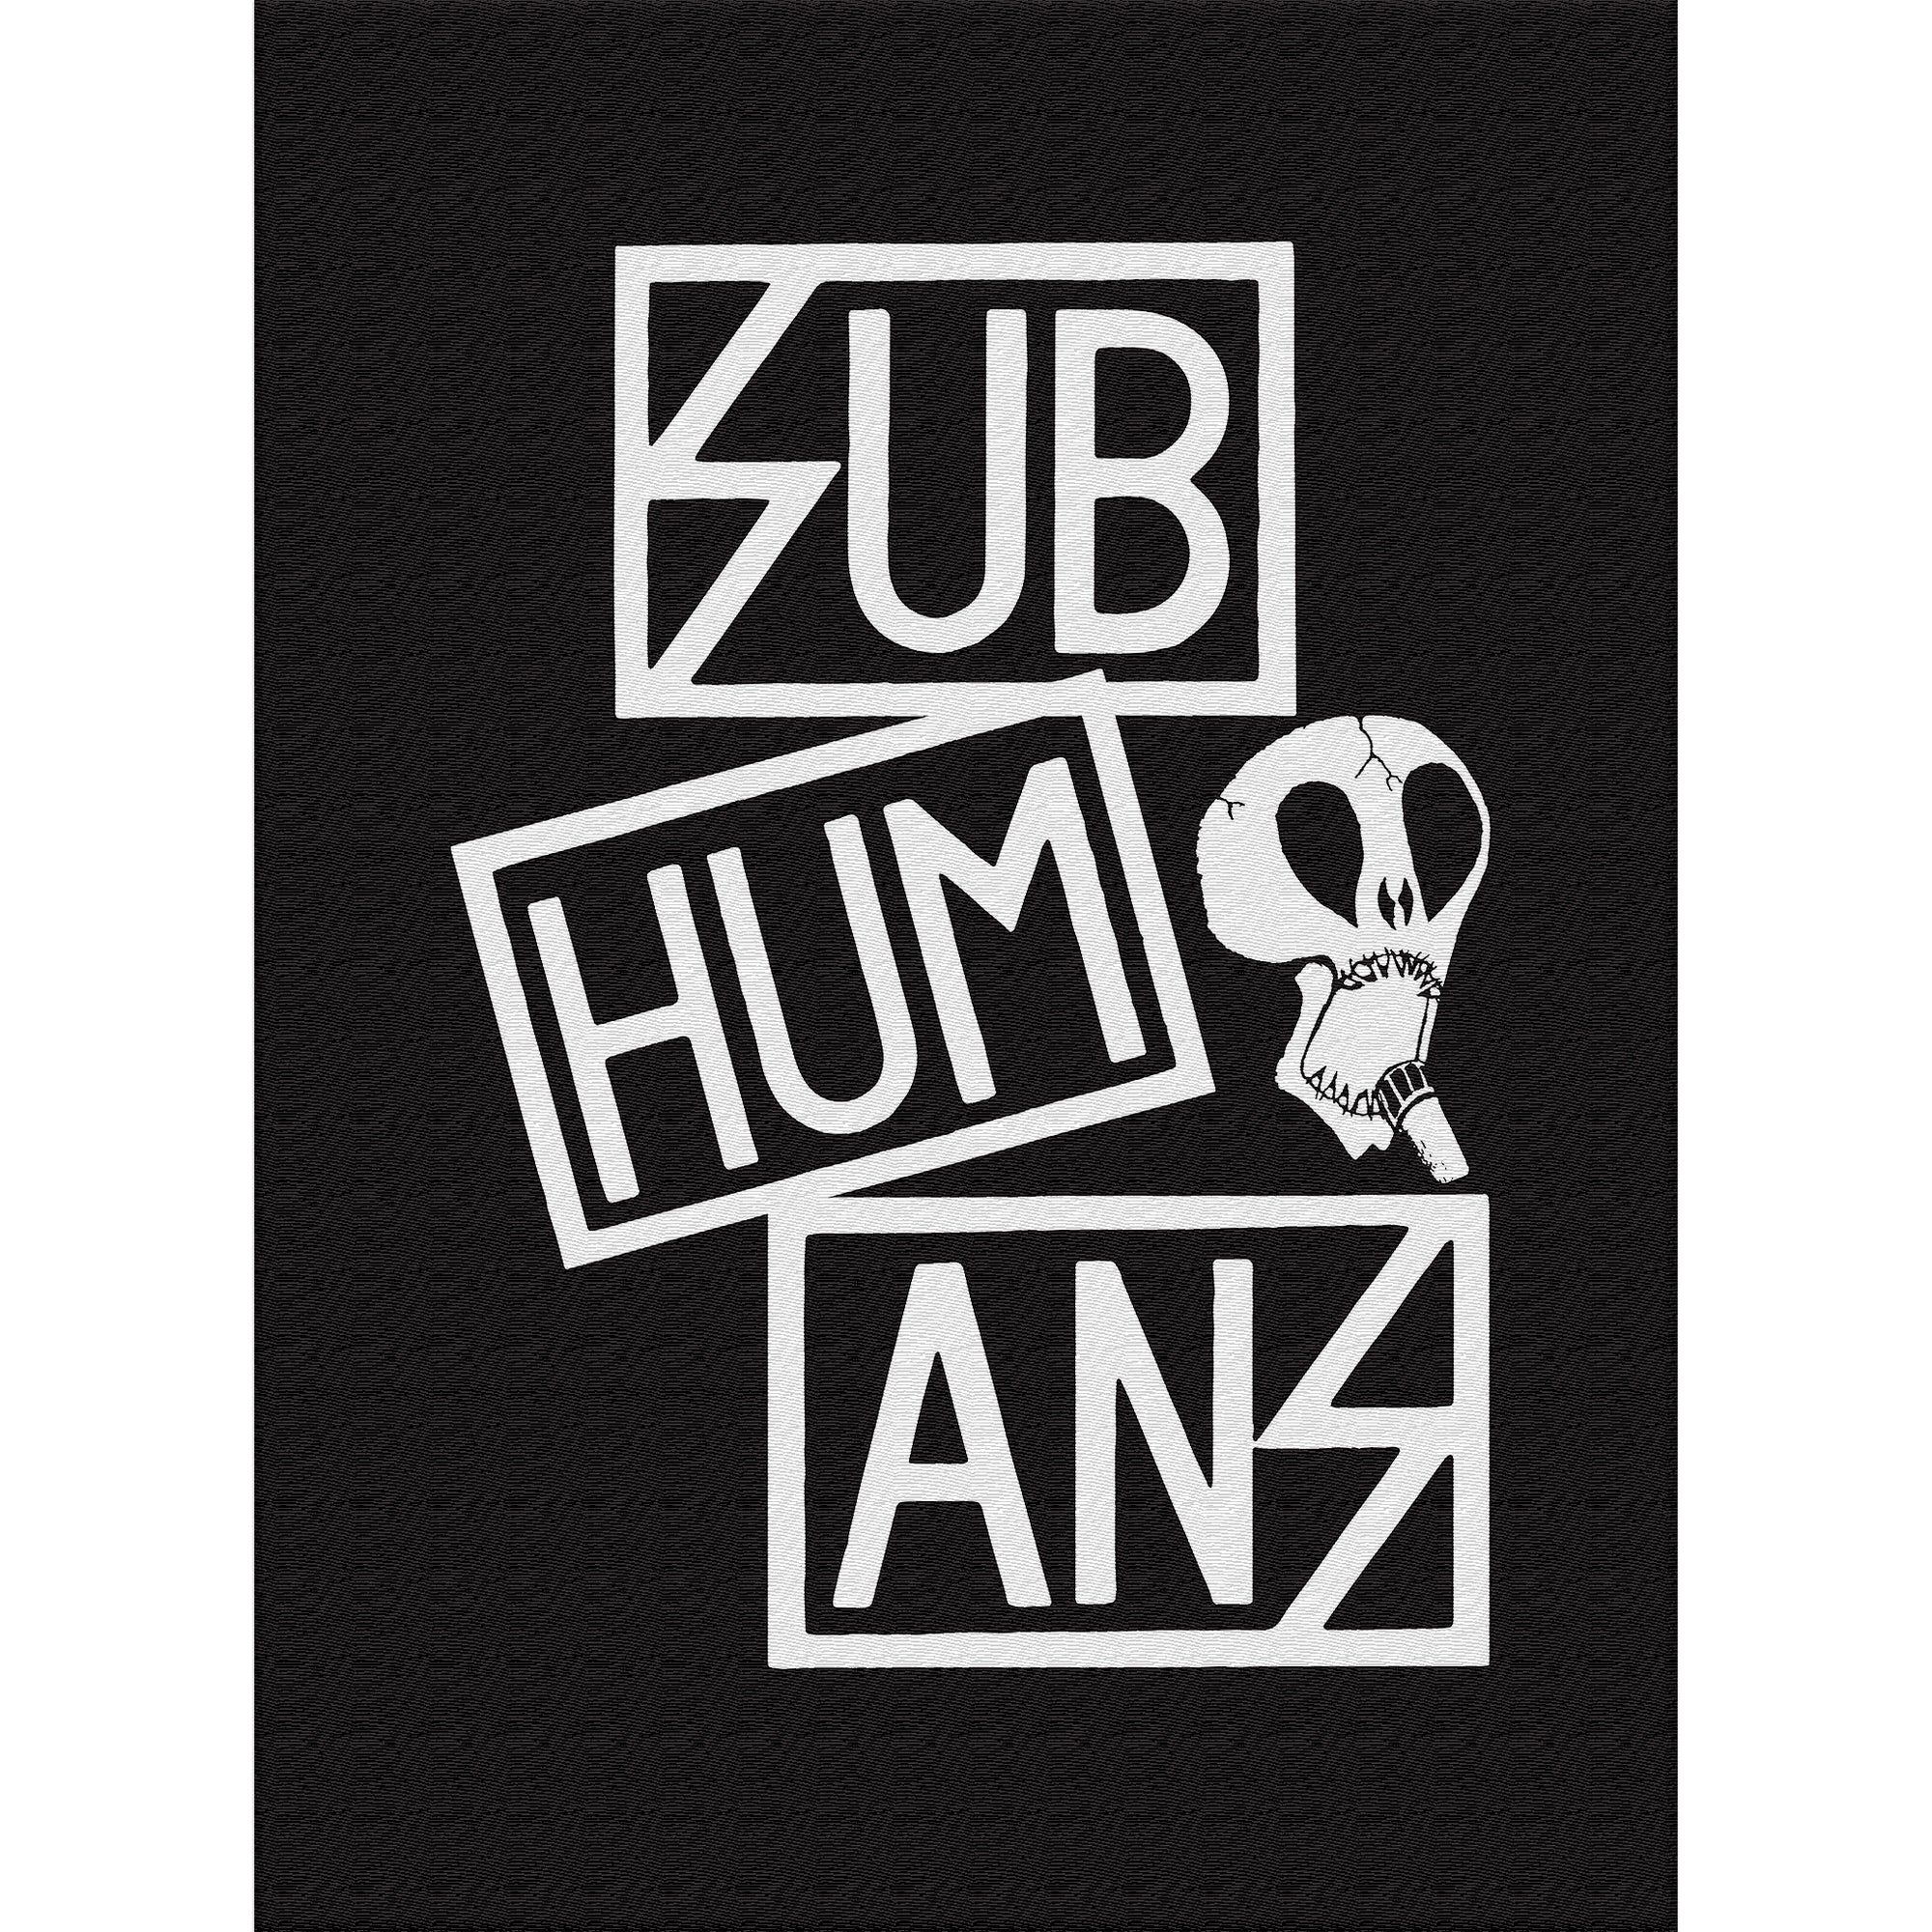 Subhumans - Small Skull & Three Part Logo - Black - Back Patch